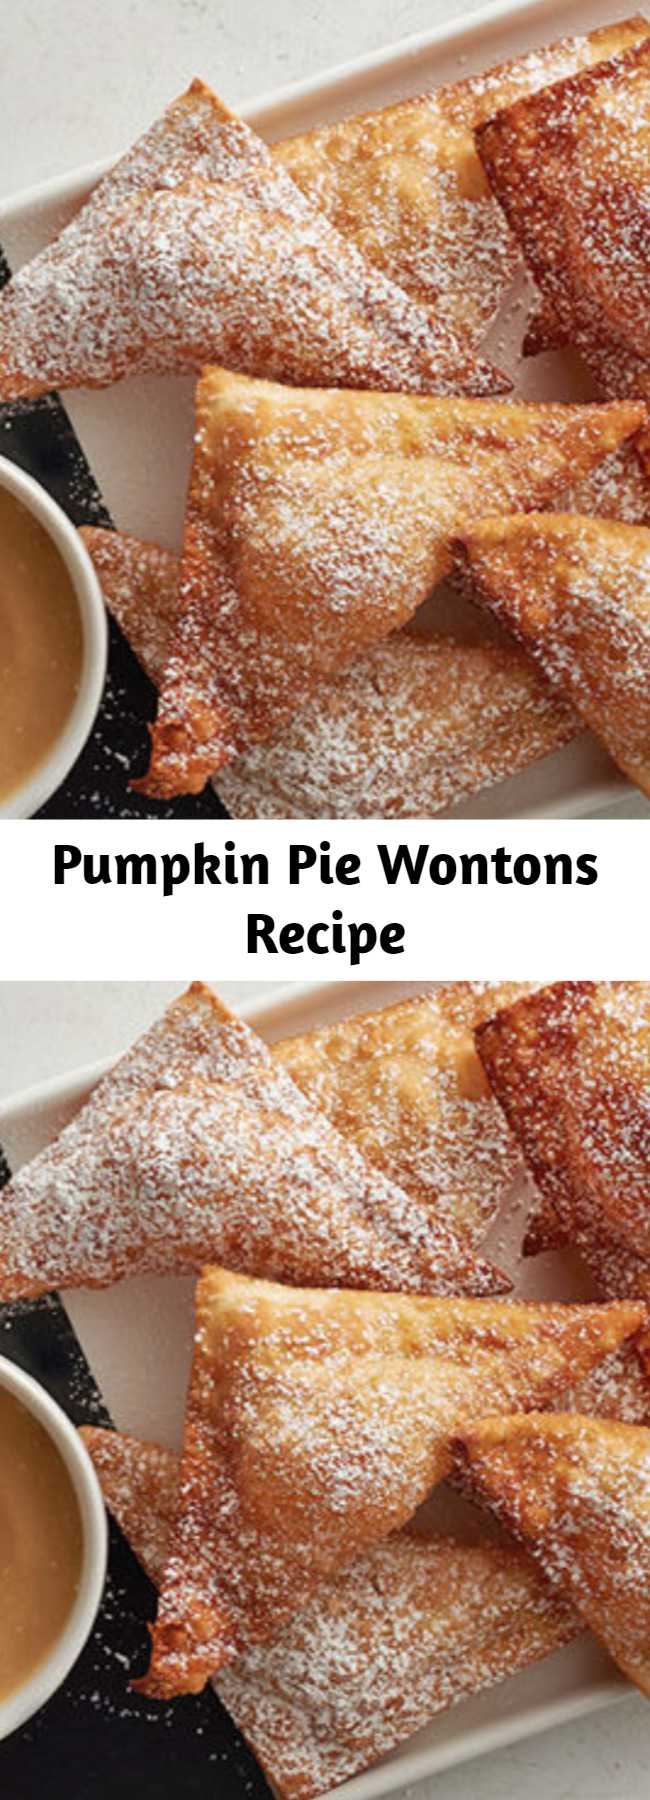 Pumpkin Pie Wontons Recipe - Magical pumpkin pie-flavored deep-fried goodness with a creamy maple dip on the side.